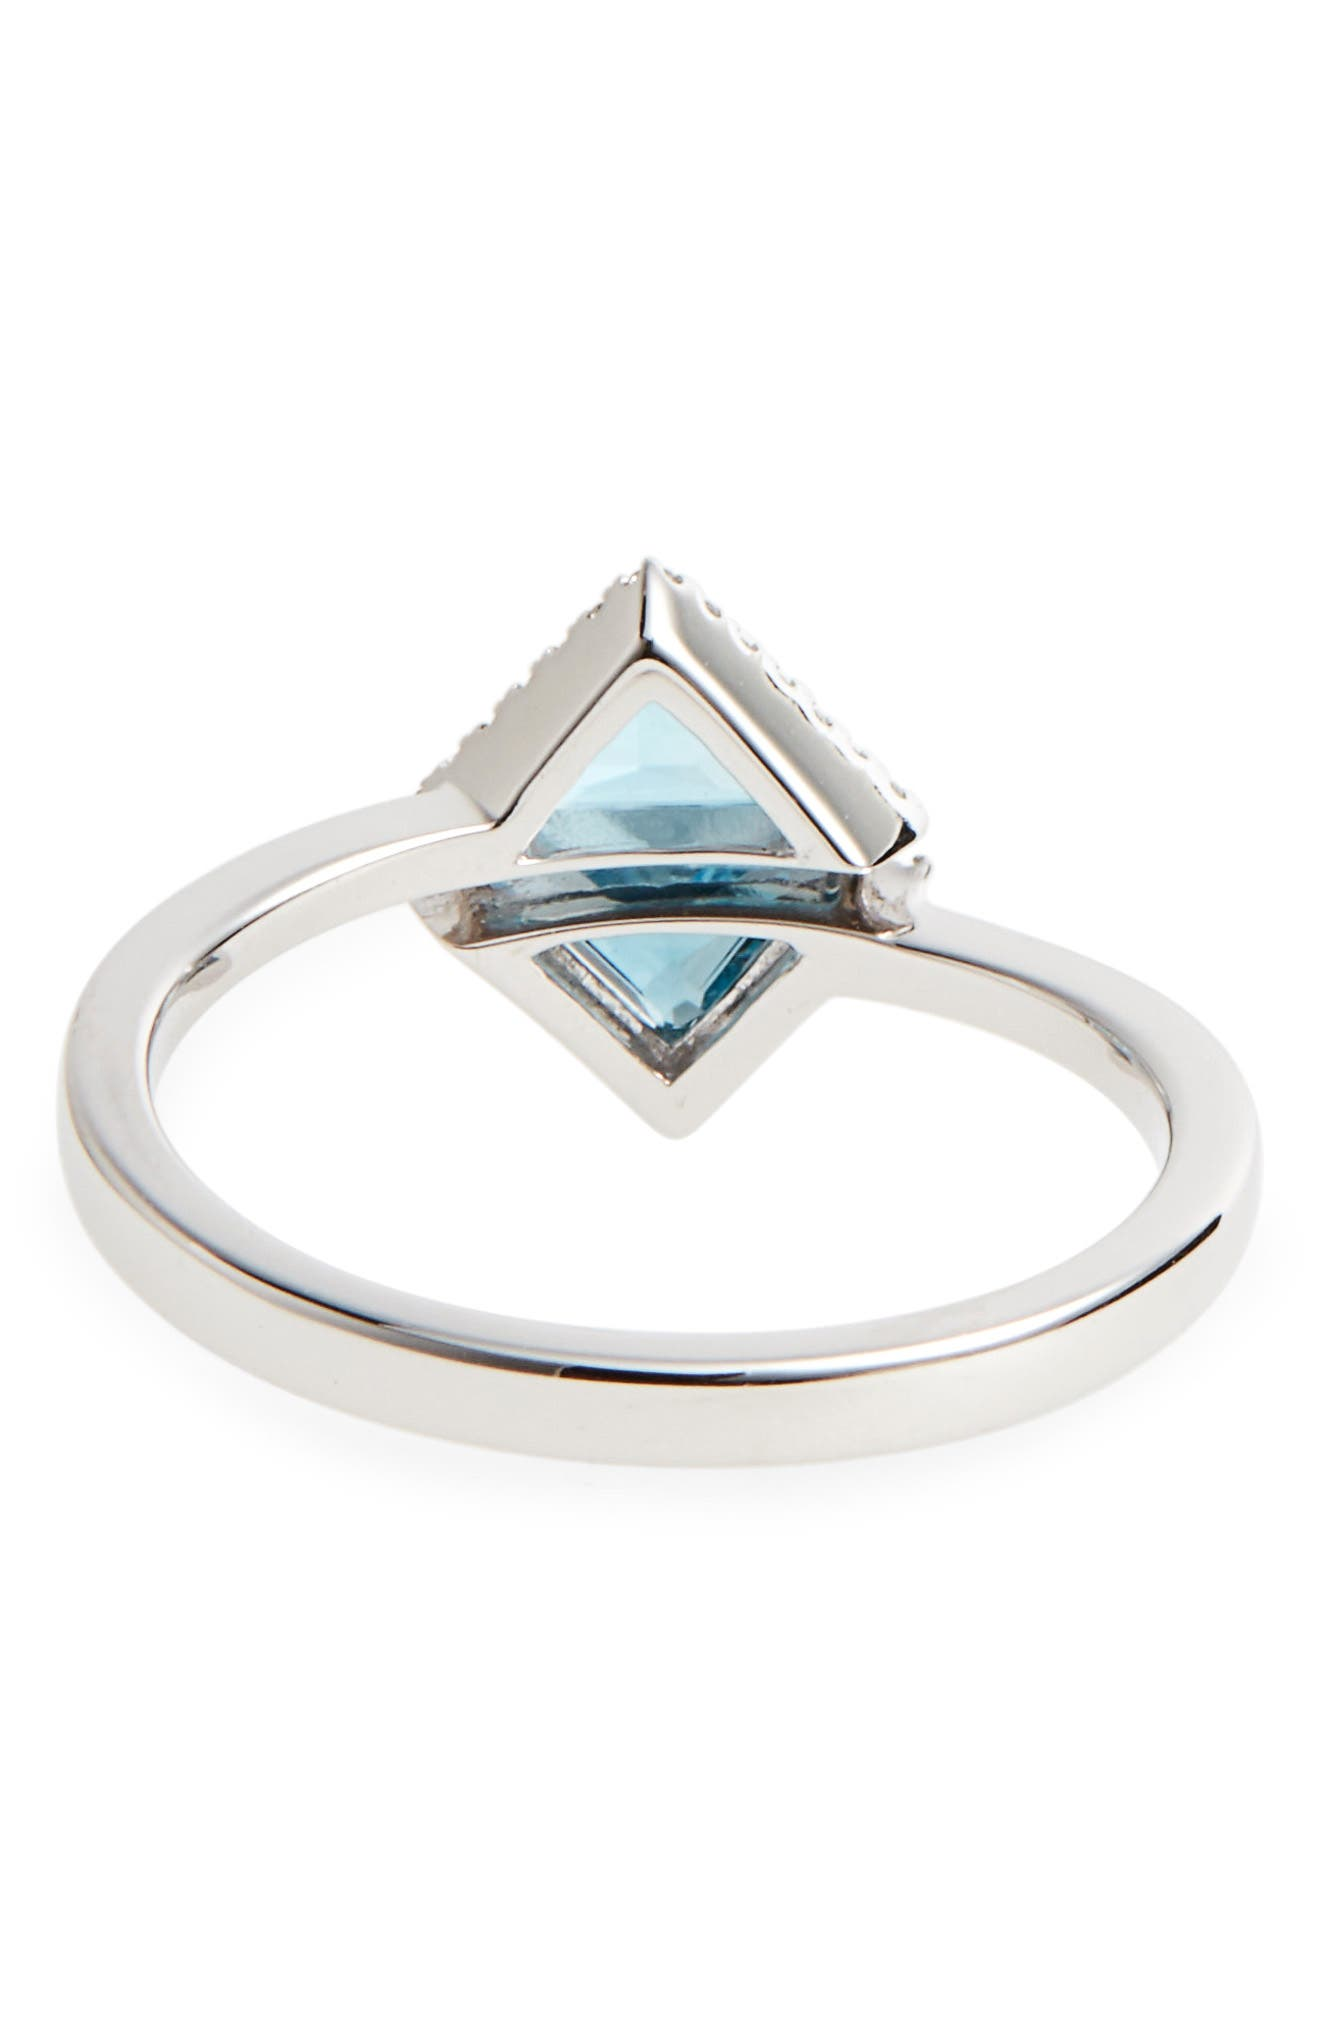 Iris Double Triangle Diamond & Semiprecious Stone Ring,                             Alternate thumbnail 4, color,                             710